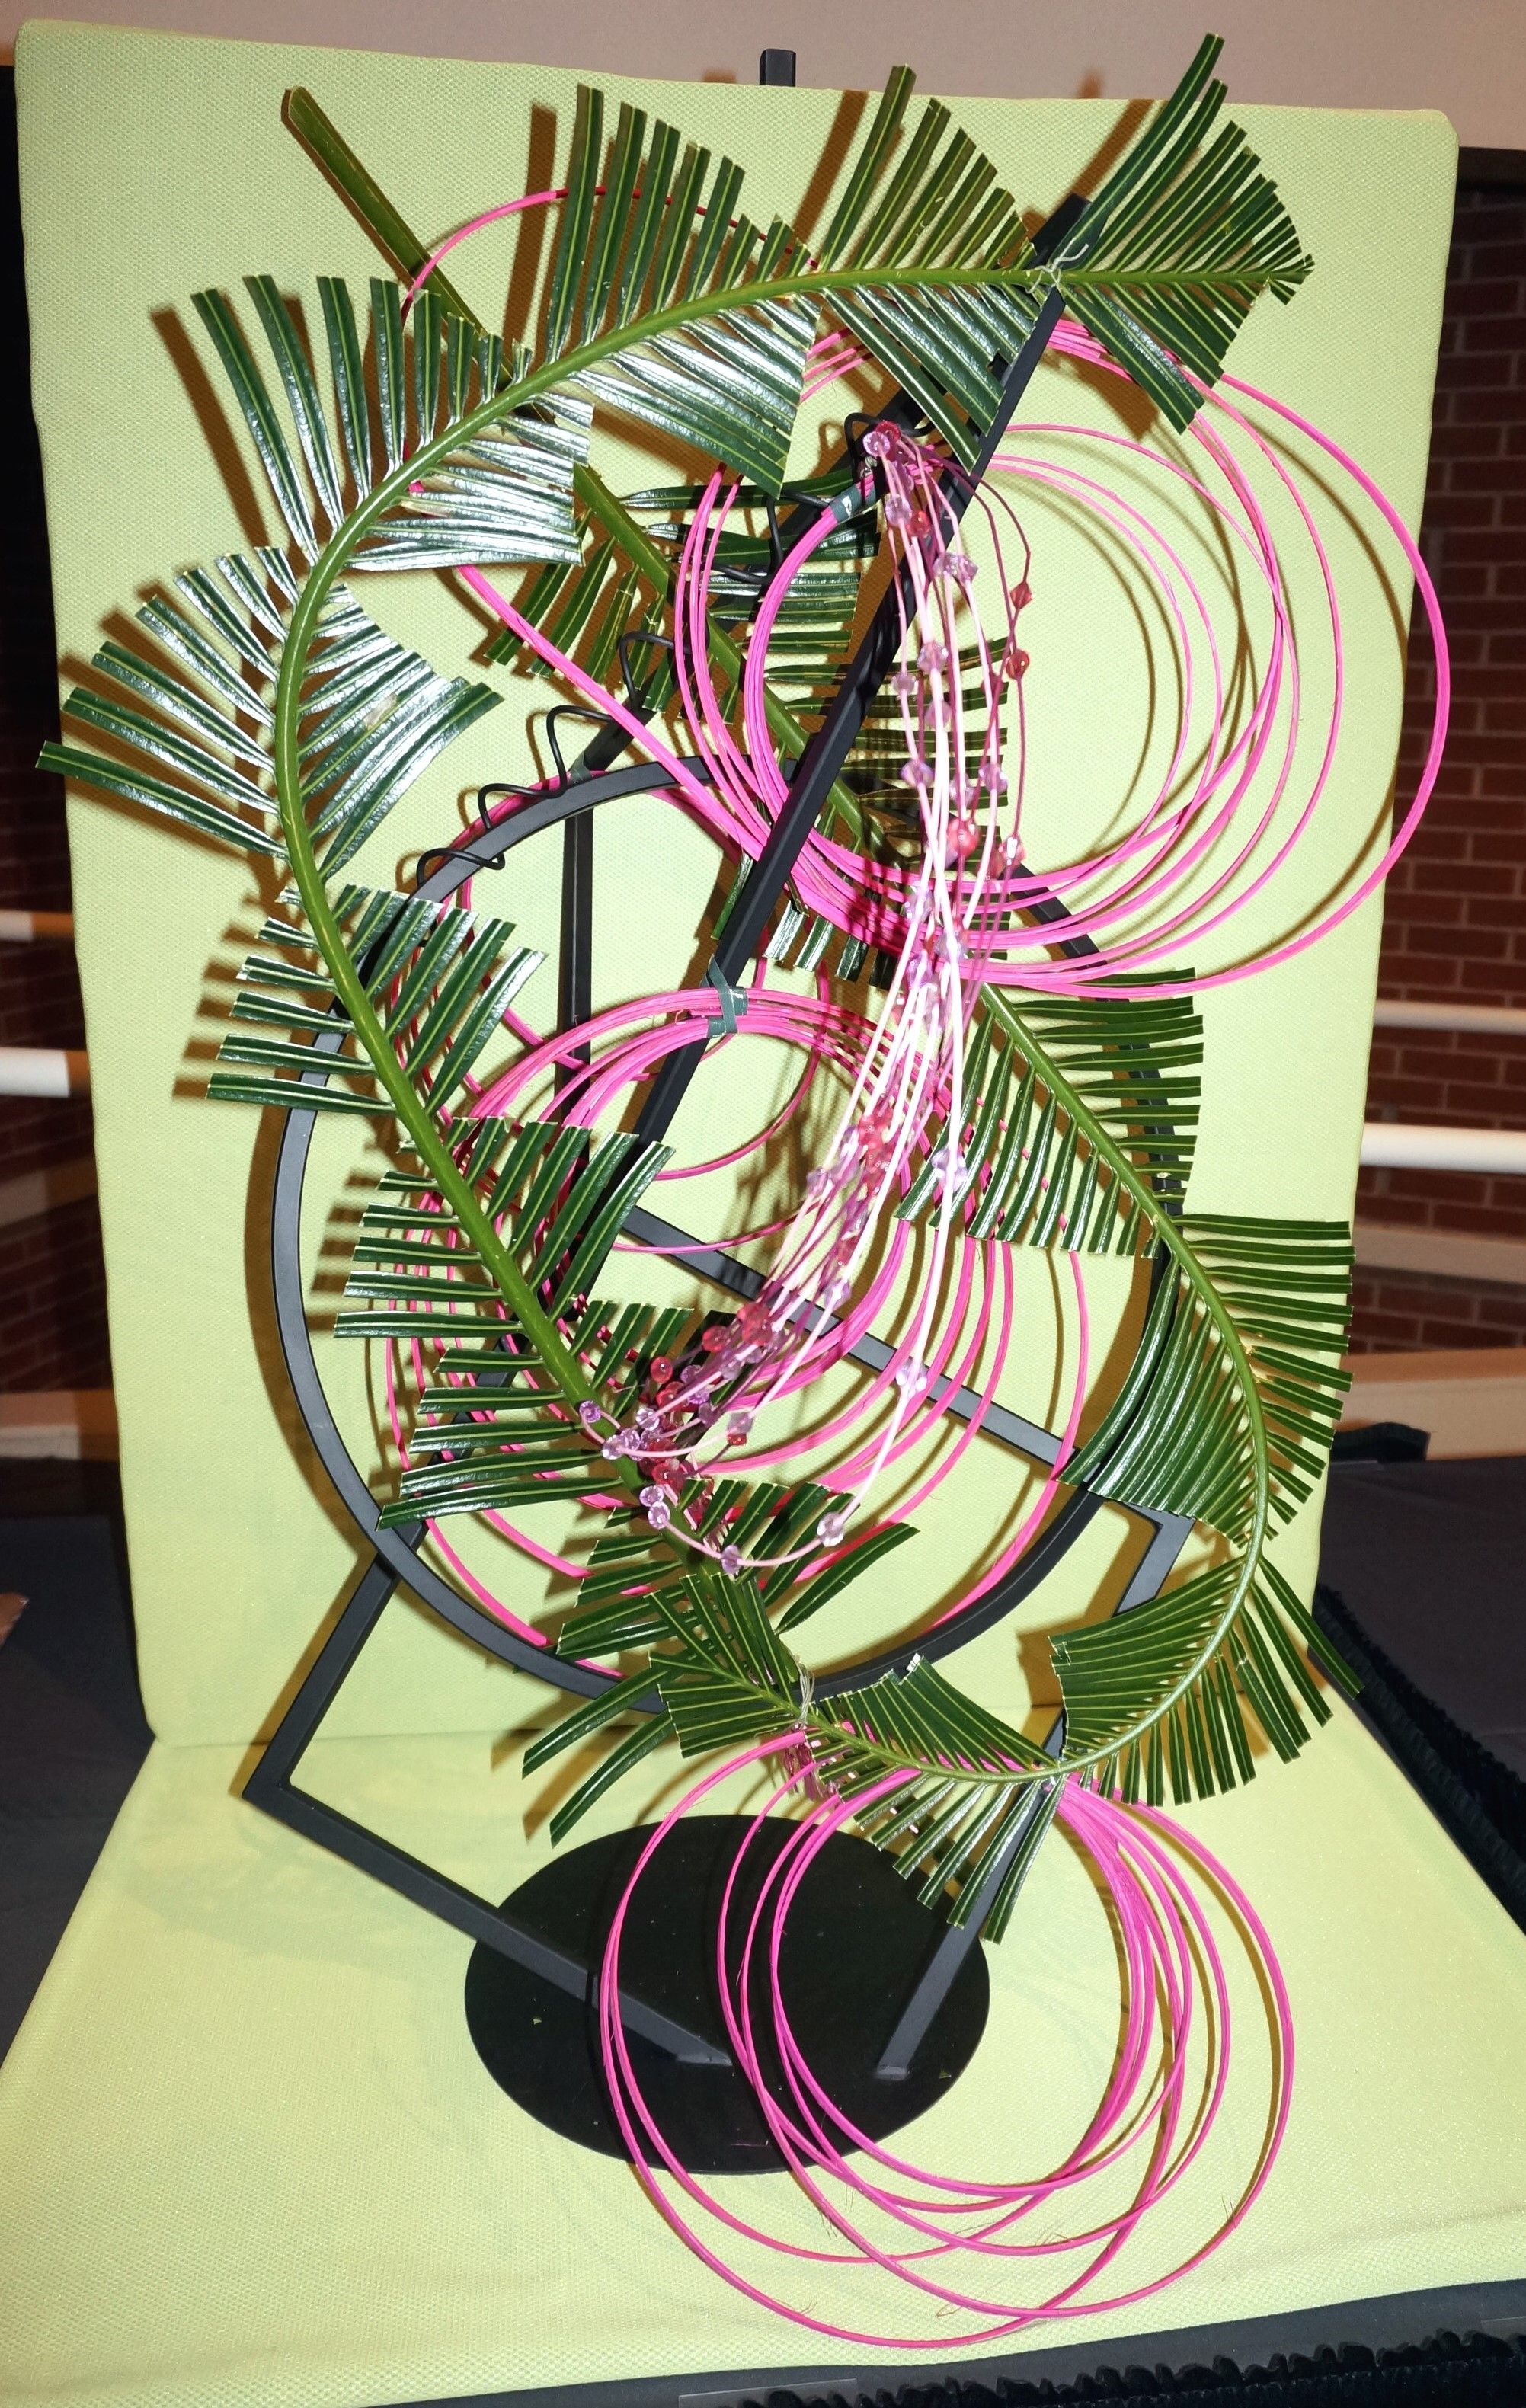 A design by Julia A. Clevett at the 2015 Flower Show Judges' Symposium in Athens, Georgia